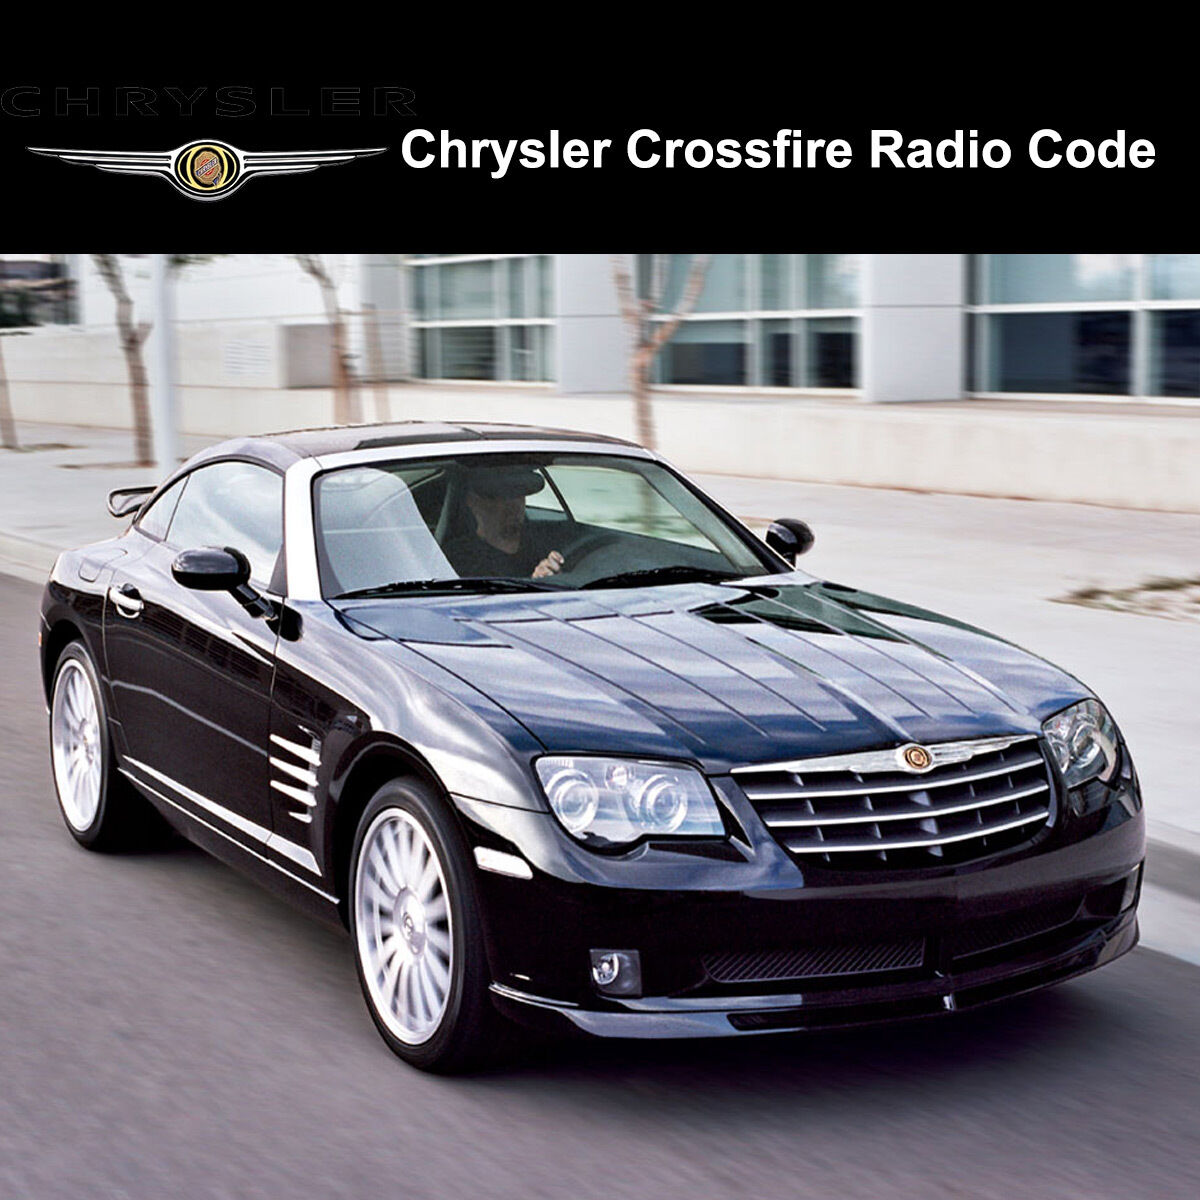 Details about Chrysler Crossfire Radio Codes Stereo Codes Pin Unlock Code  Fast Service